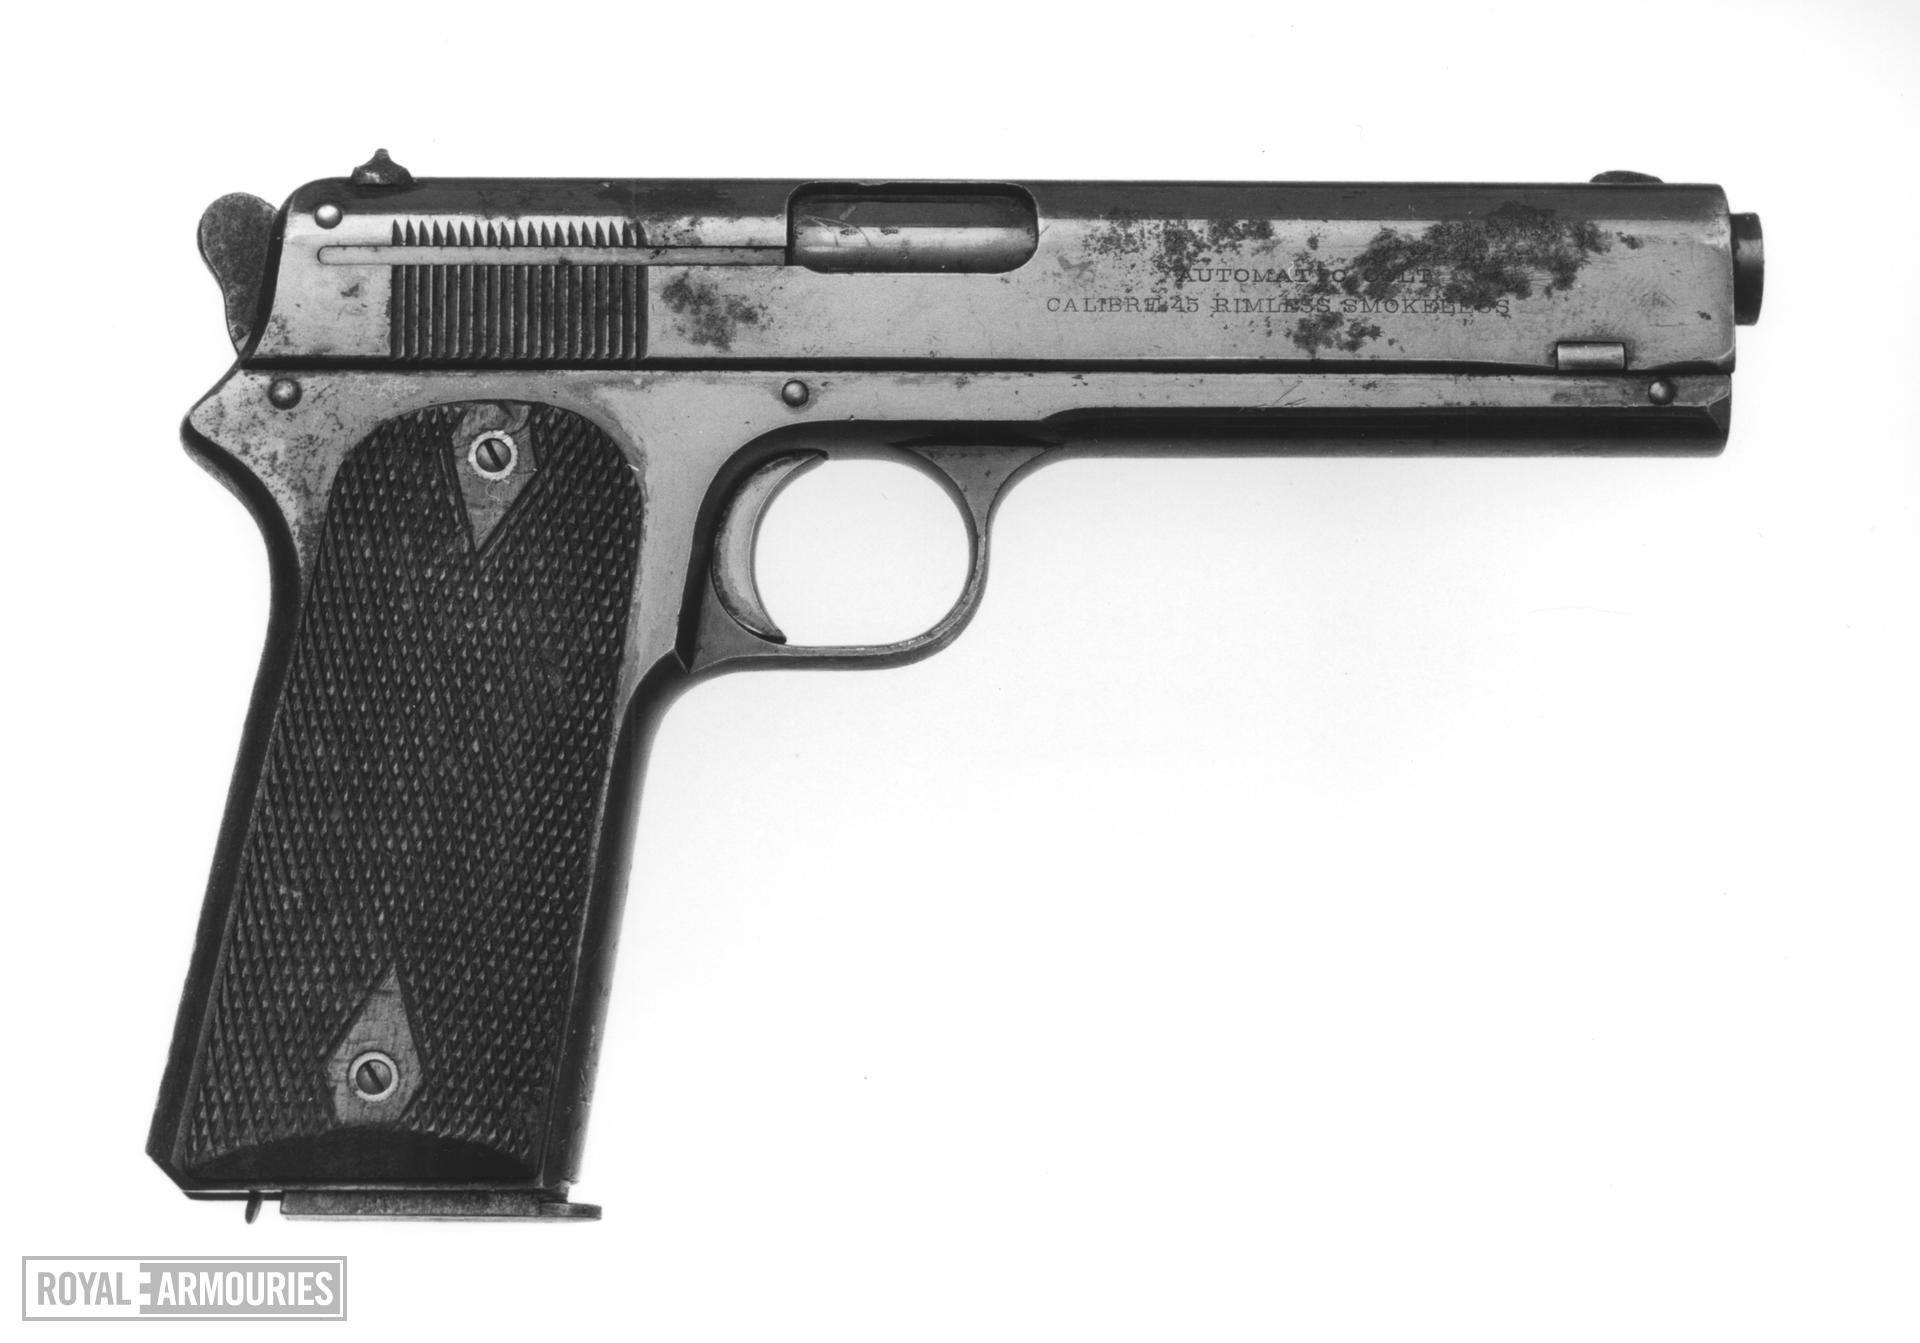 Centrefire self-loading military pistol - Colt 1911 A1 By Remington Rand.